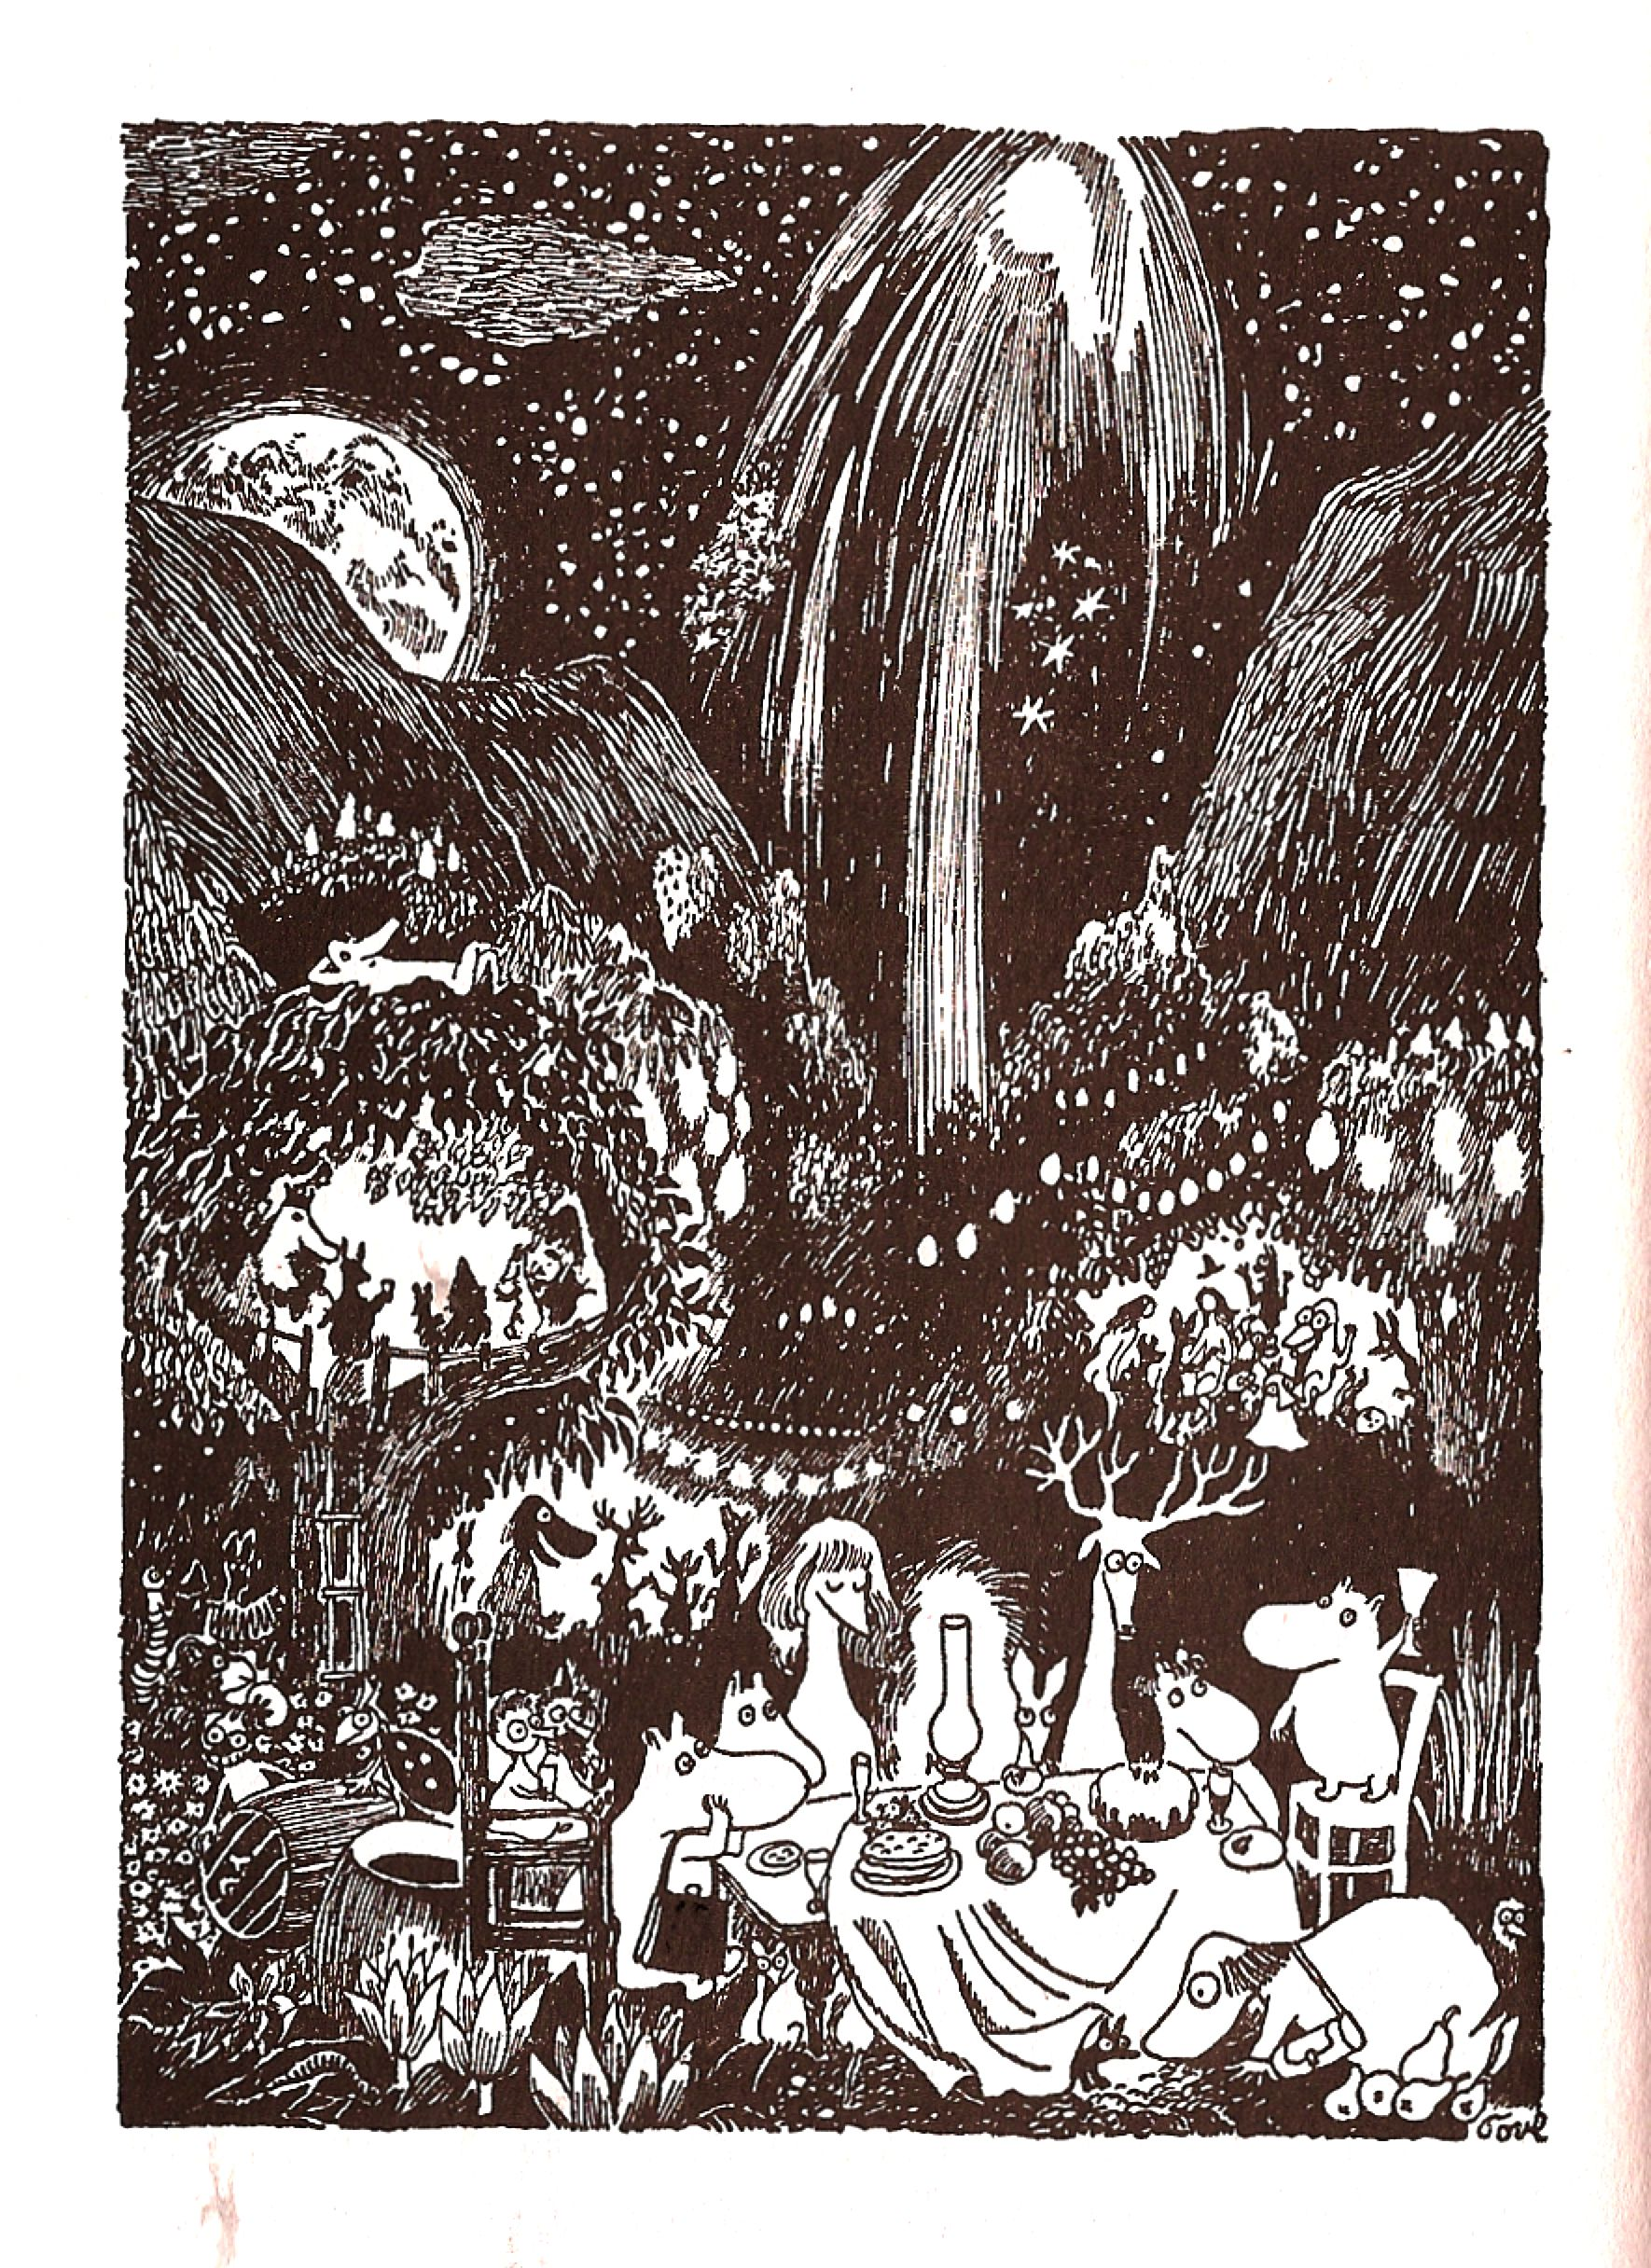 The Party In Moominvalley Finn Family Moomintroll By Tove Jansson 1948 Tove Jansson Art Inspiration Illustration Art